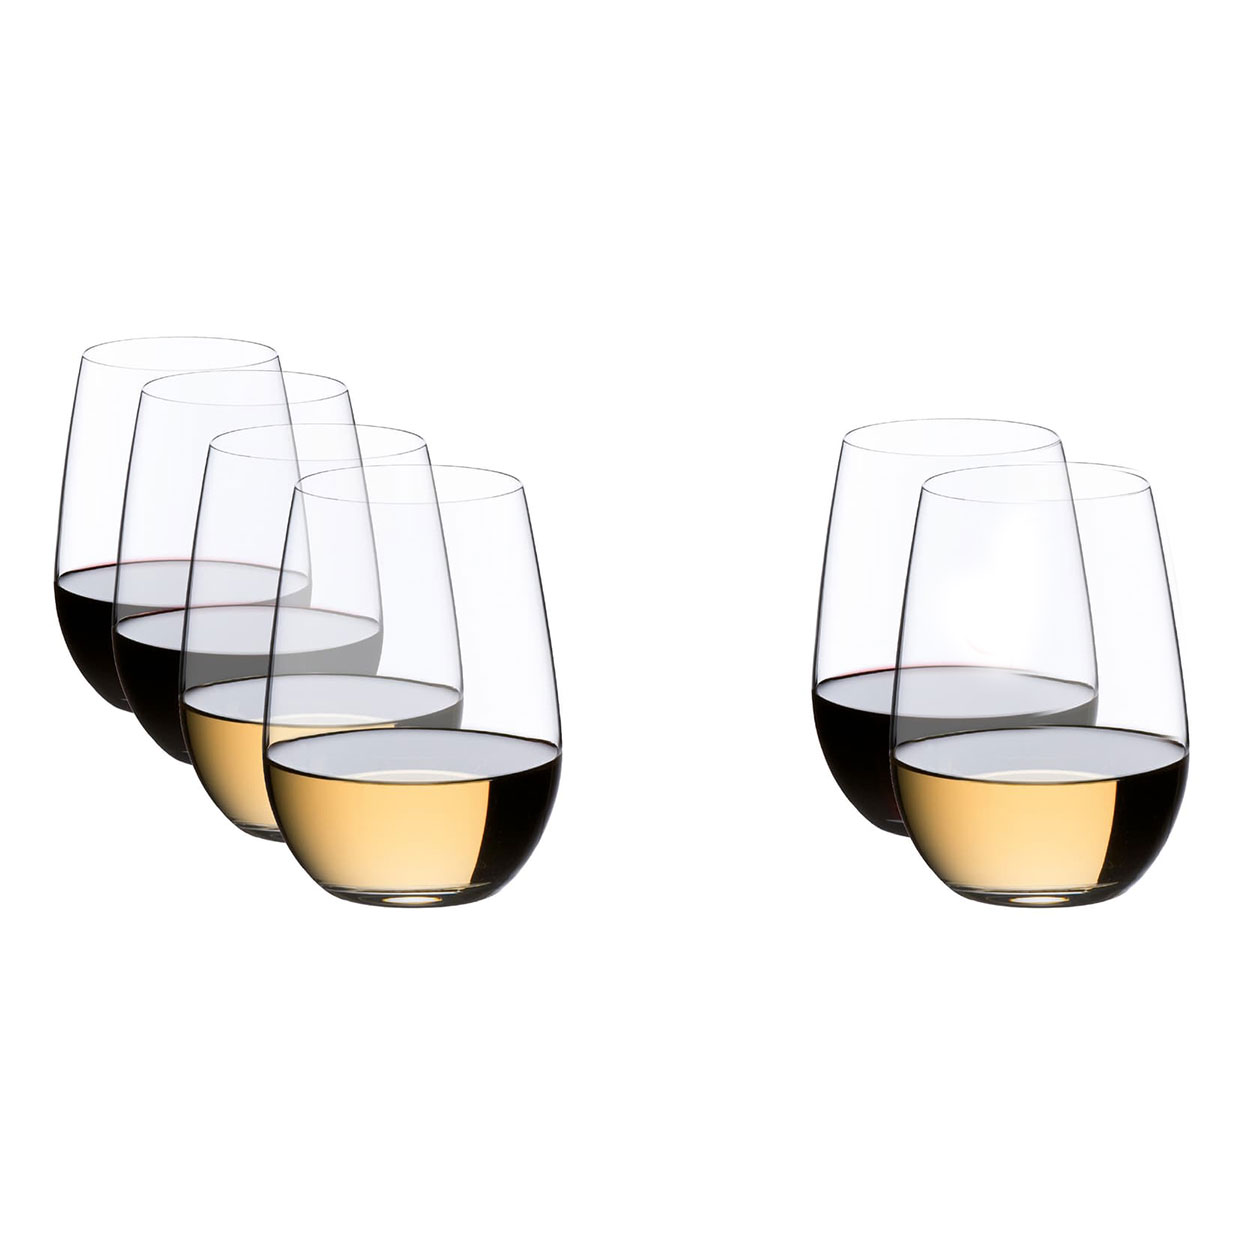 Riedel O Set of 6 Riesling/Sauvignon Blanc Wine Tumblers